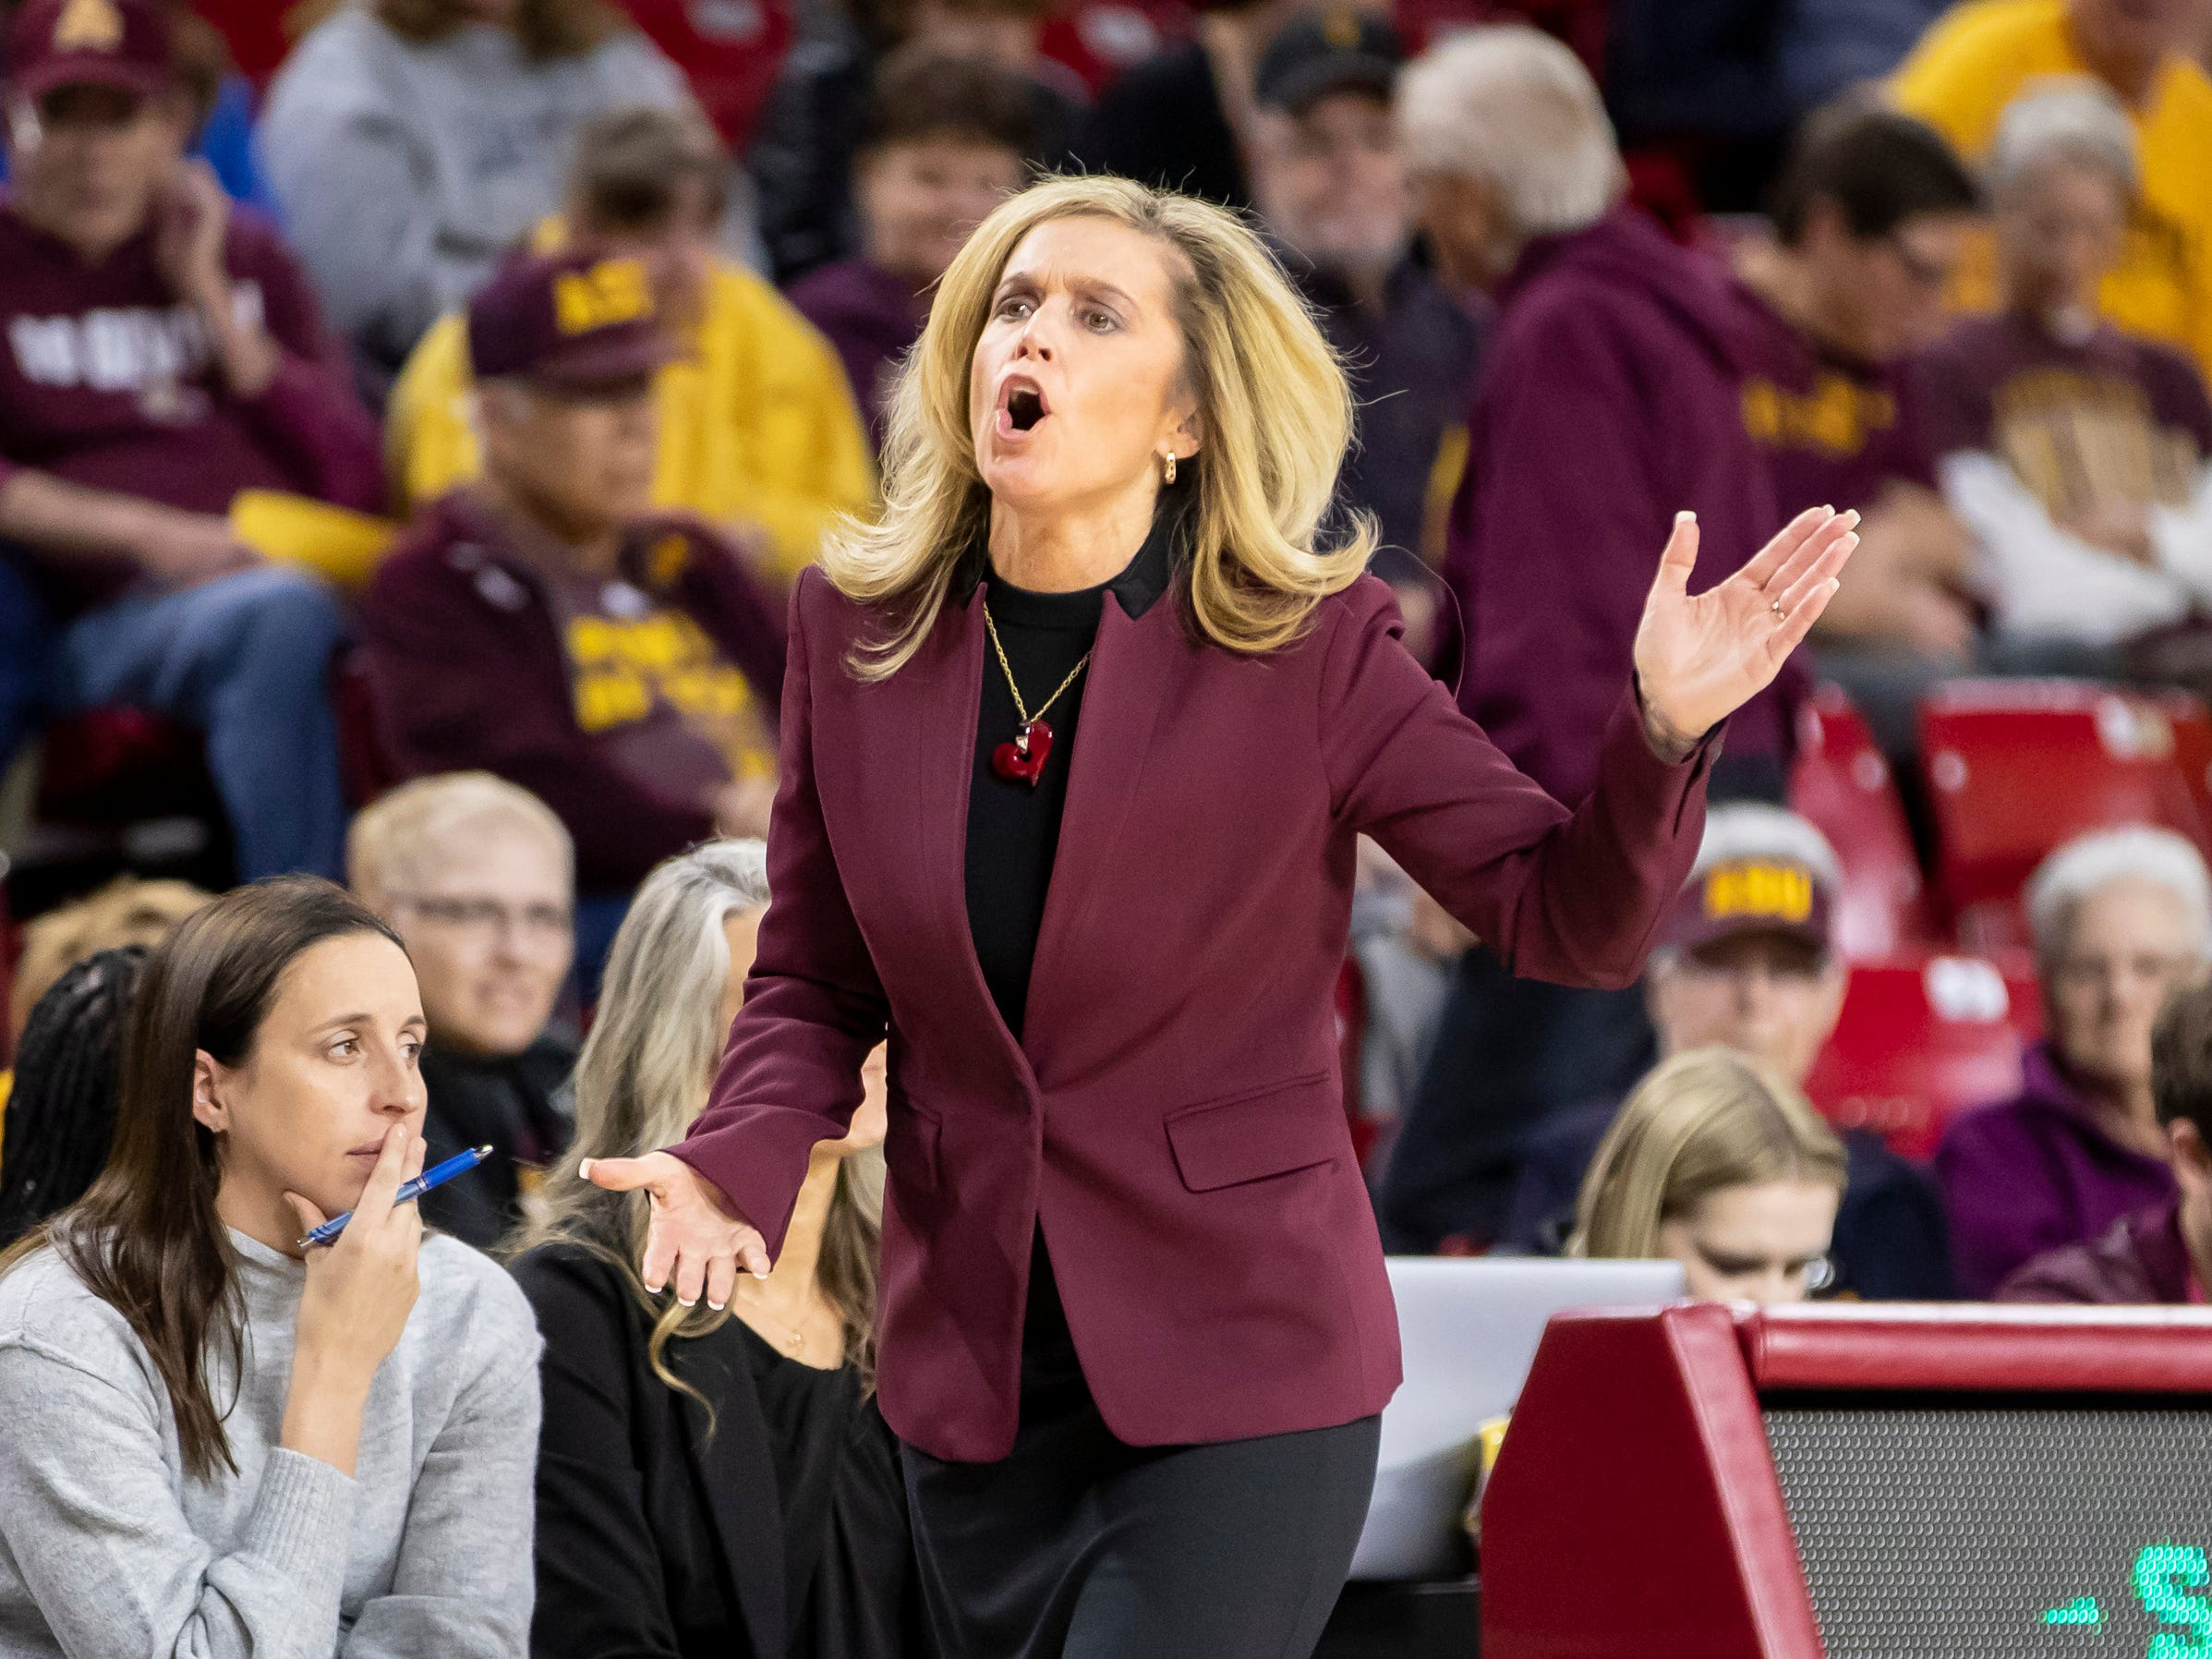 Head coach Charli Turner Thorne of the Arizona State Sun Devils reacts to a call during the game against  Tulsa Golden Hurricane at Wells Fargo Arena on Sunday, December 2, 2018 in Tempe, Arizona.